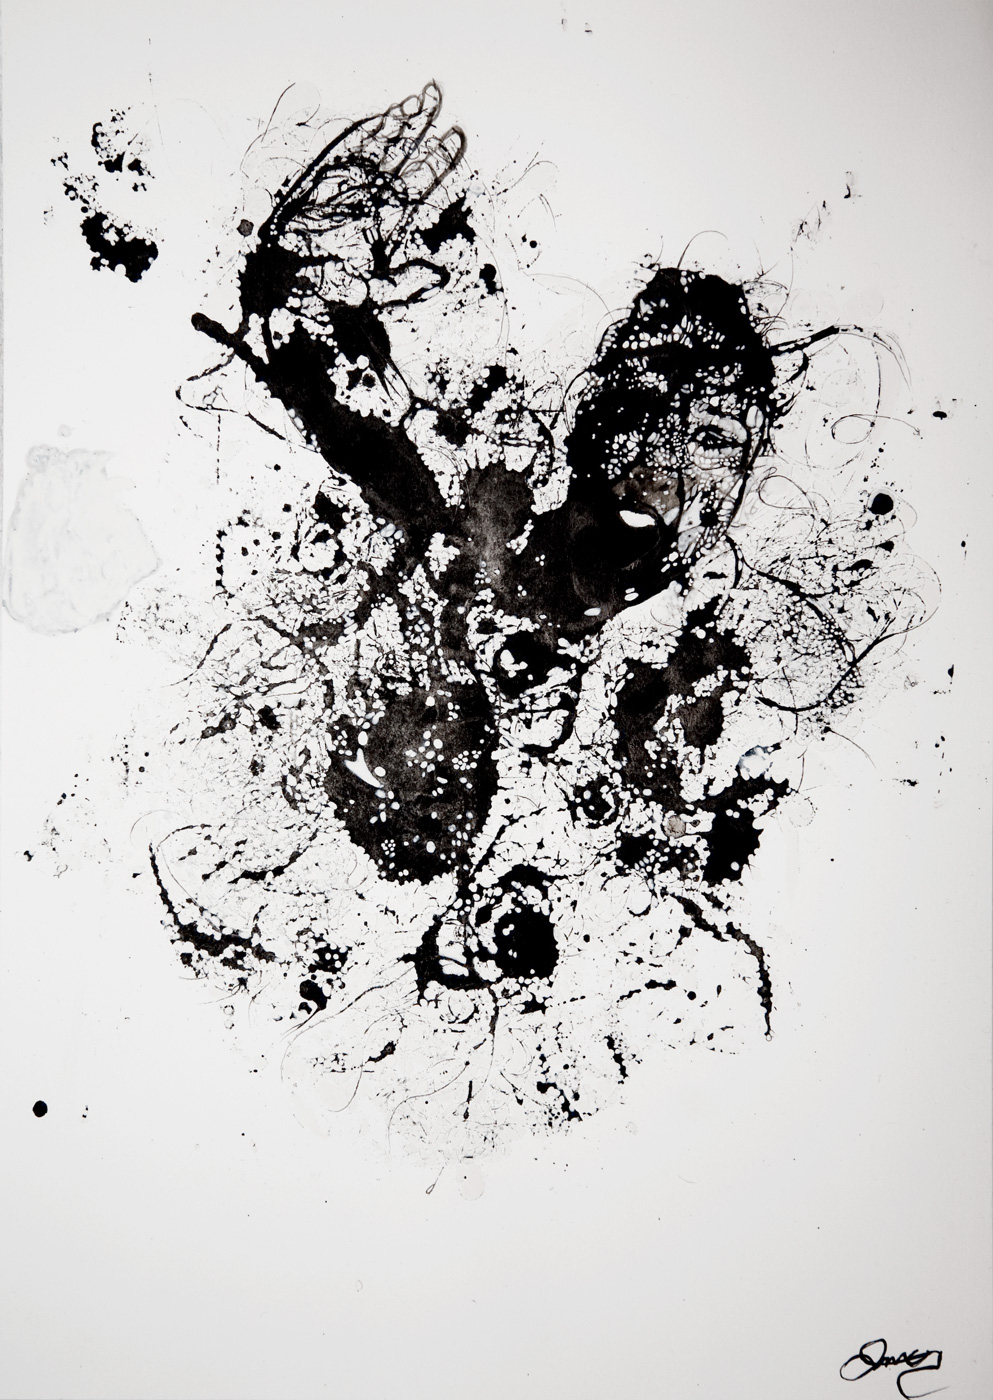 Lara Mumby-Croft. 2014. Tangled. (Ink on paper). Collection of the artist.